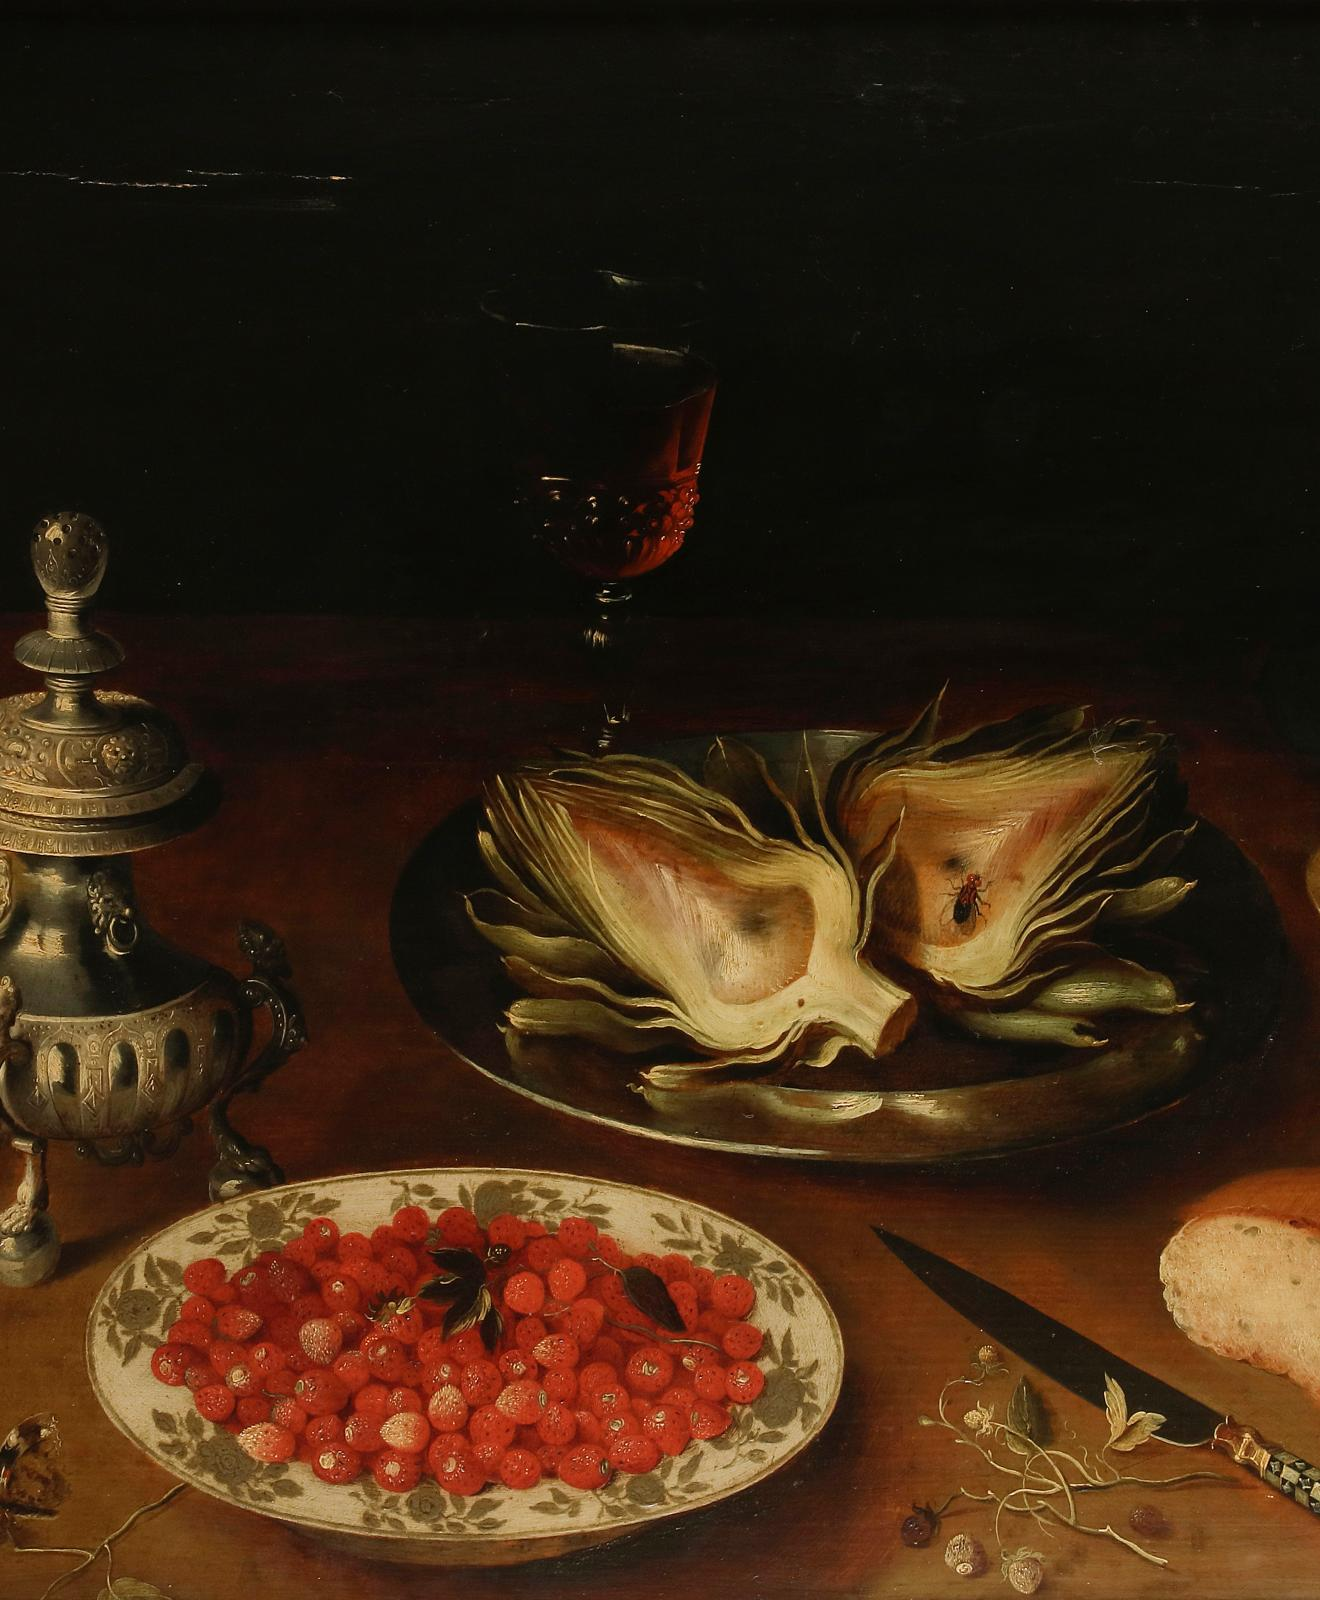 Osias Beert the Elder (c.1580-1624) and his studio, Plat d'artichauts, coupe de framboises, timbale de mûres et coupe de cerises, oil on oak panel, 53